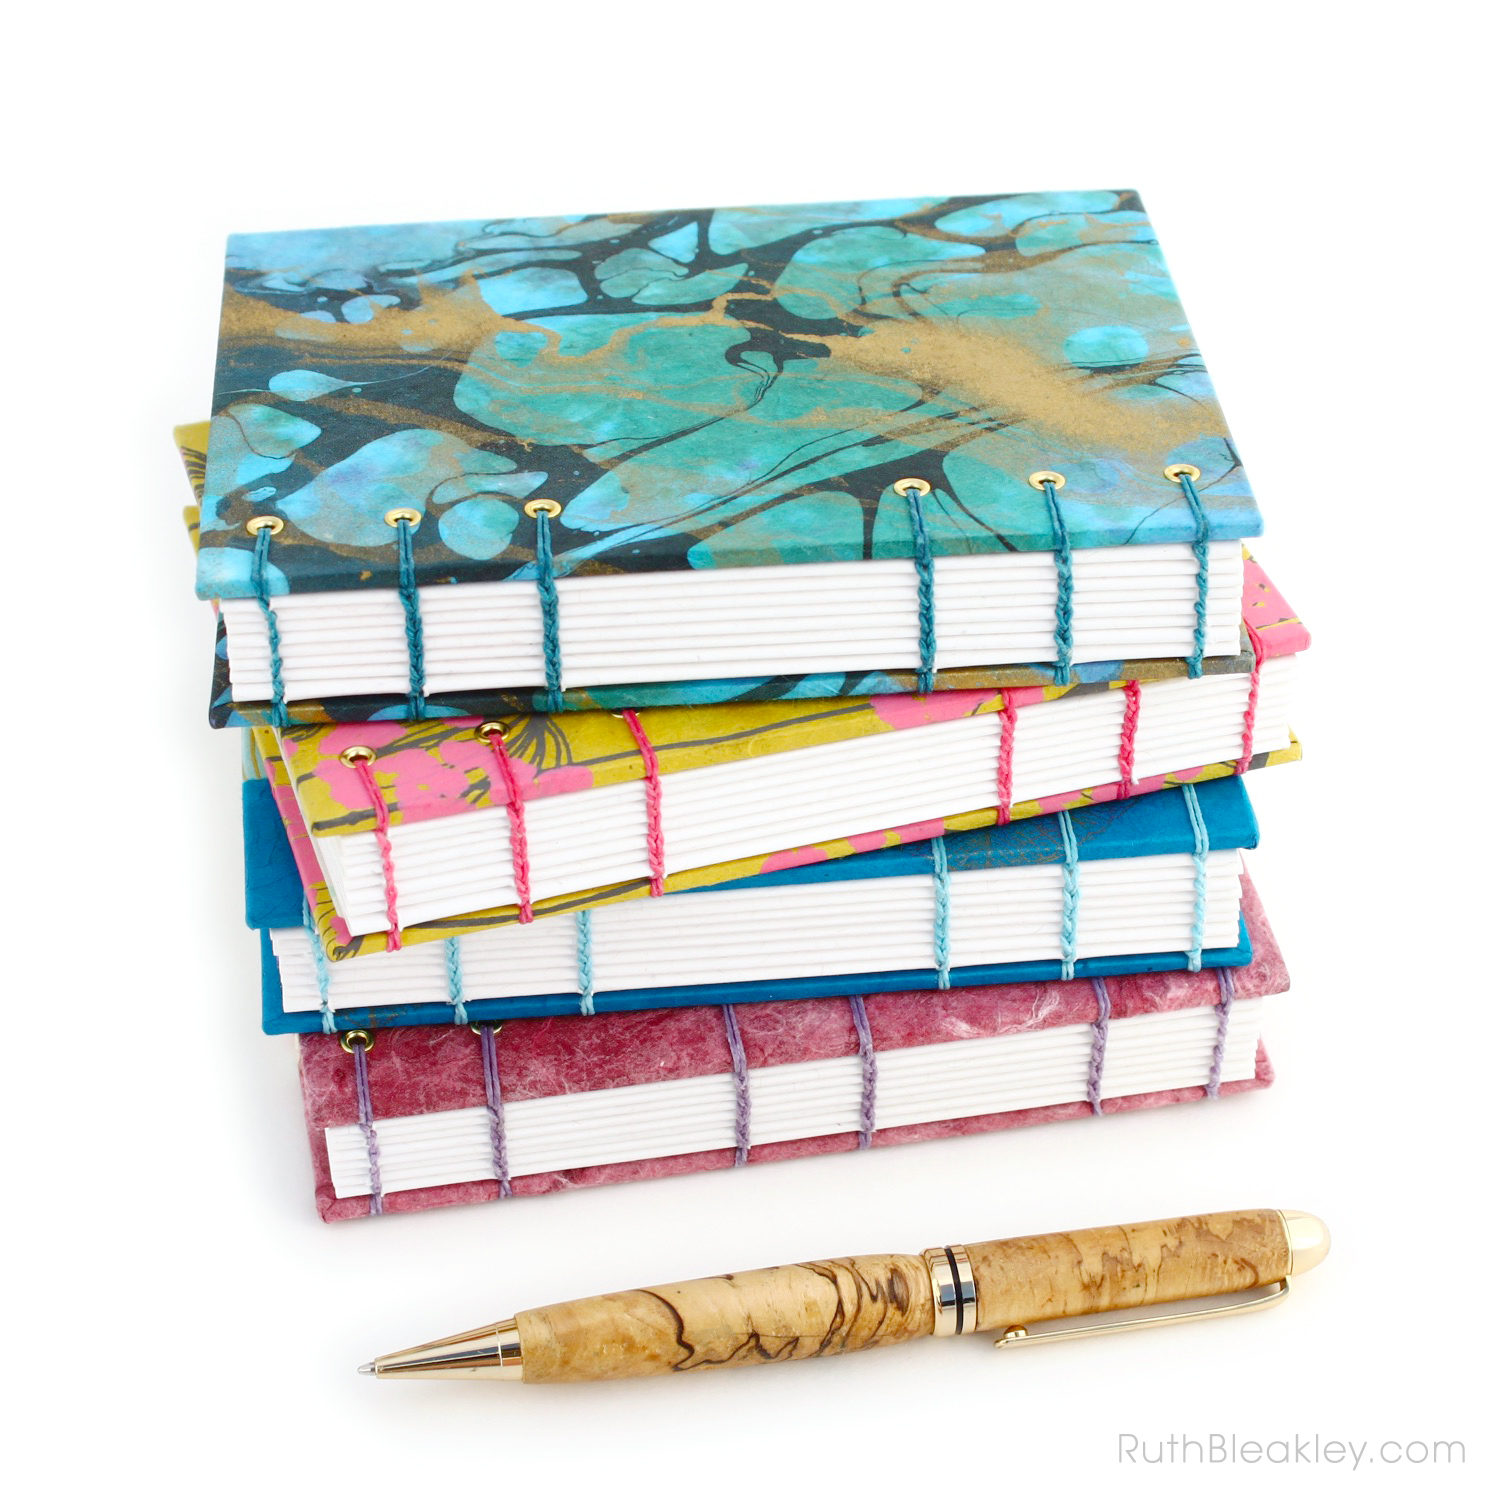 Stack of handmade blank journals handmade by Ruth Bleakley suitable for sketching or writing